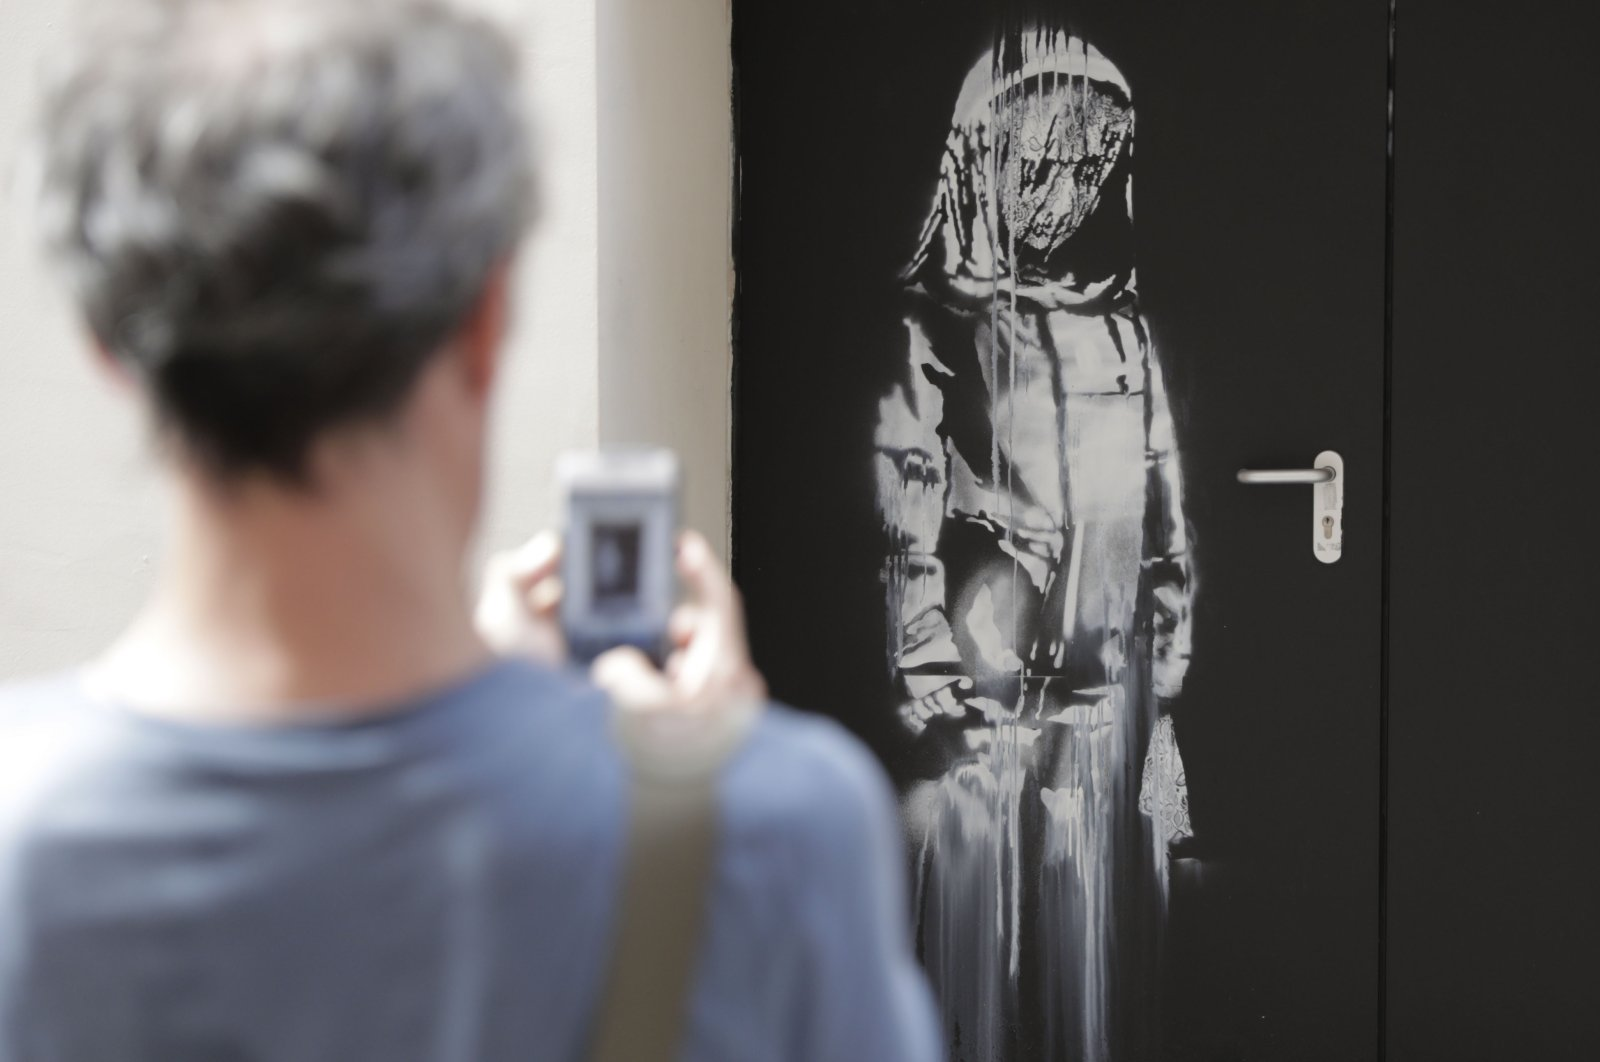 In this file photo taken on June 25, 2018, a man takes a photograph of an artwork by street artist Banksy in Paris on a side street to the Bataclan concert hall where a terrorist attack killed 90 people, November 13, 2015. (Photo by Thomas SAMSON via AFP)